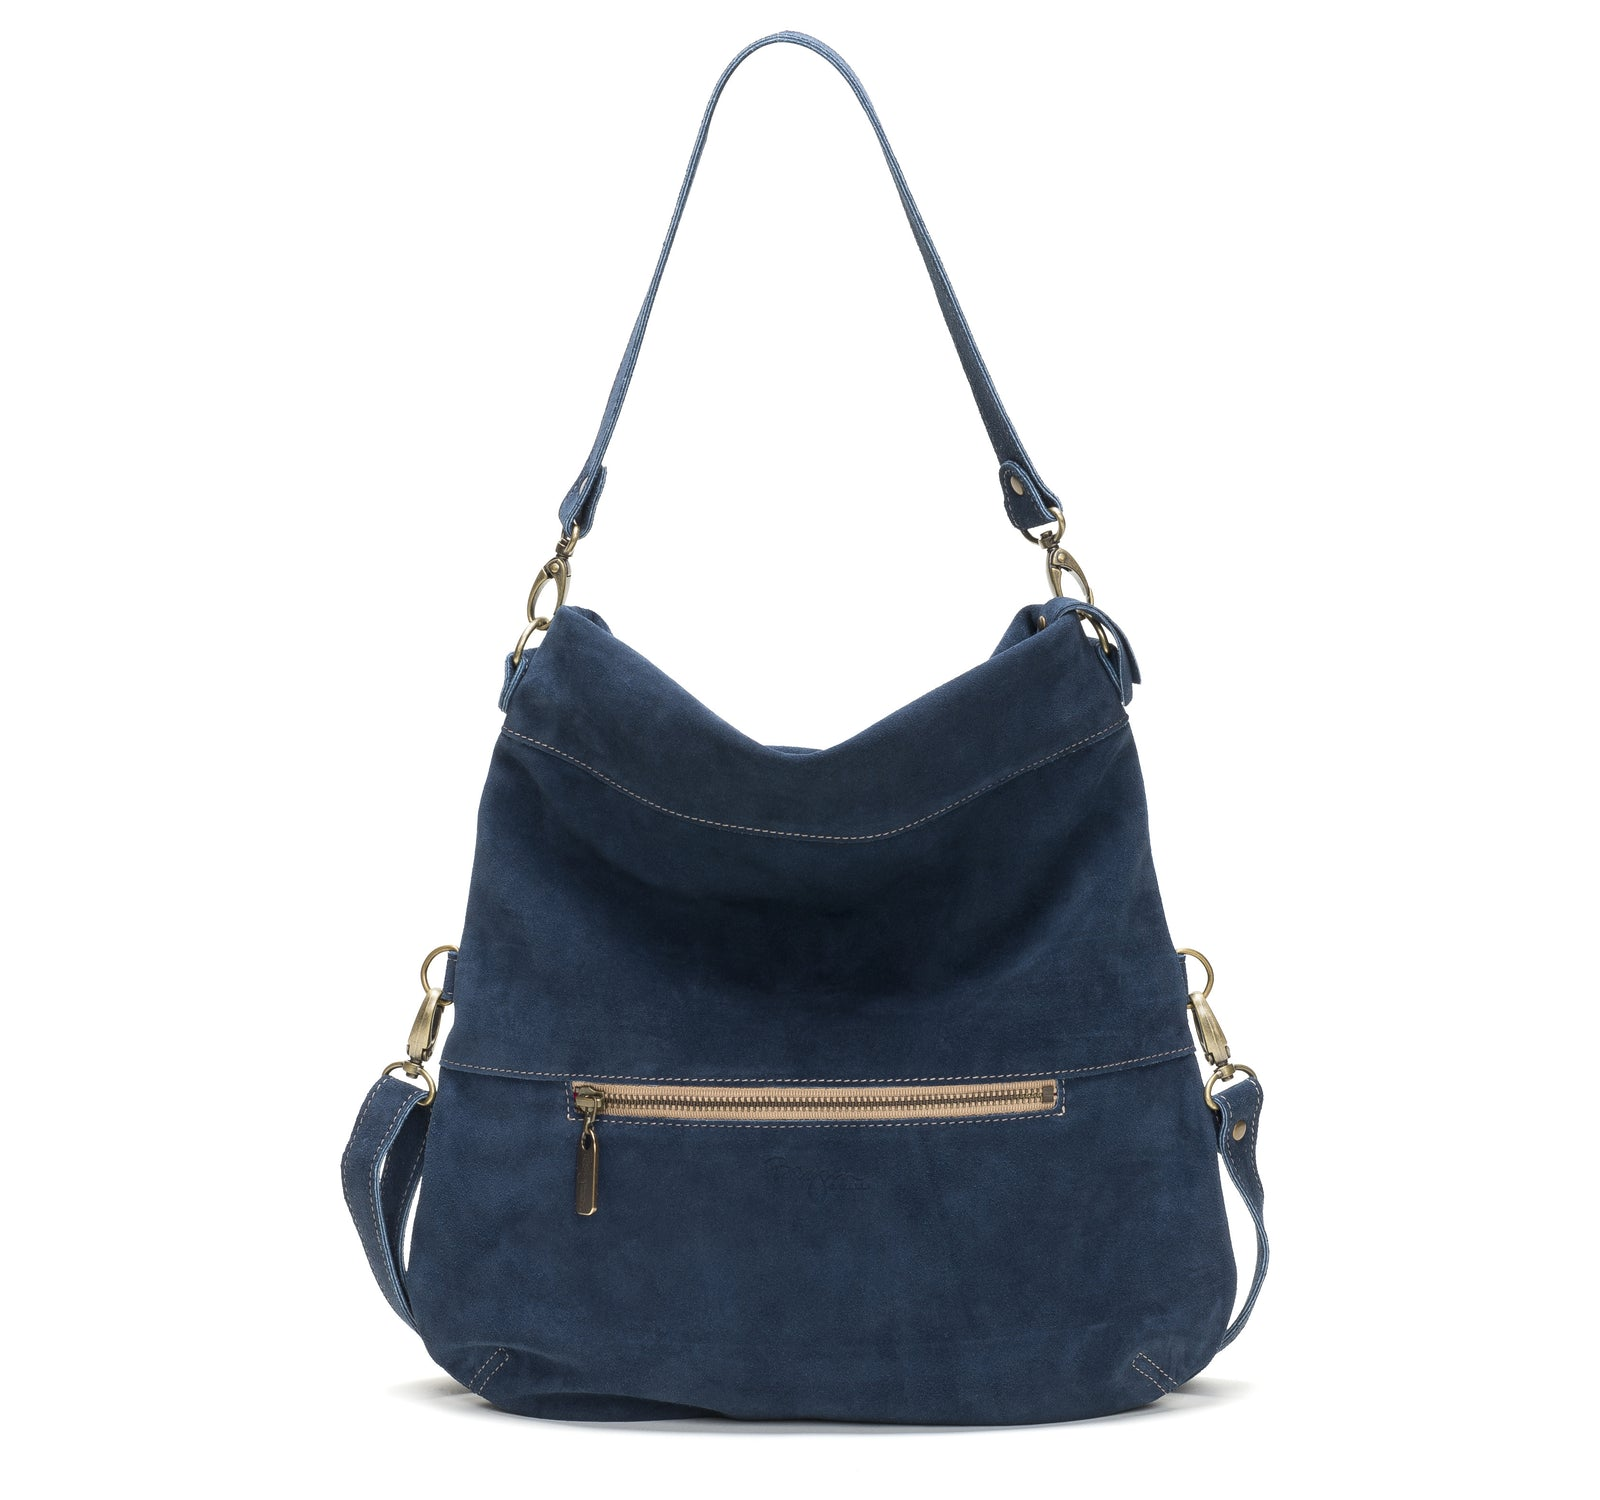 Mini-Lauren Crossbody - Pacific - Brynn Capella, Medium Crossbody